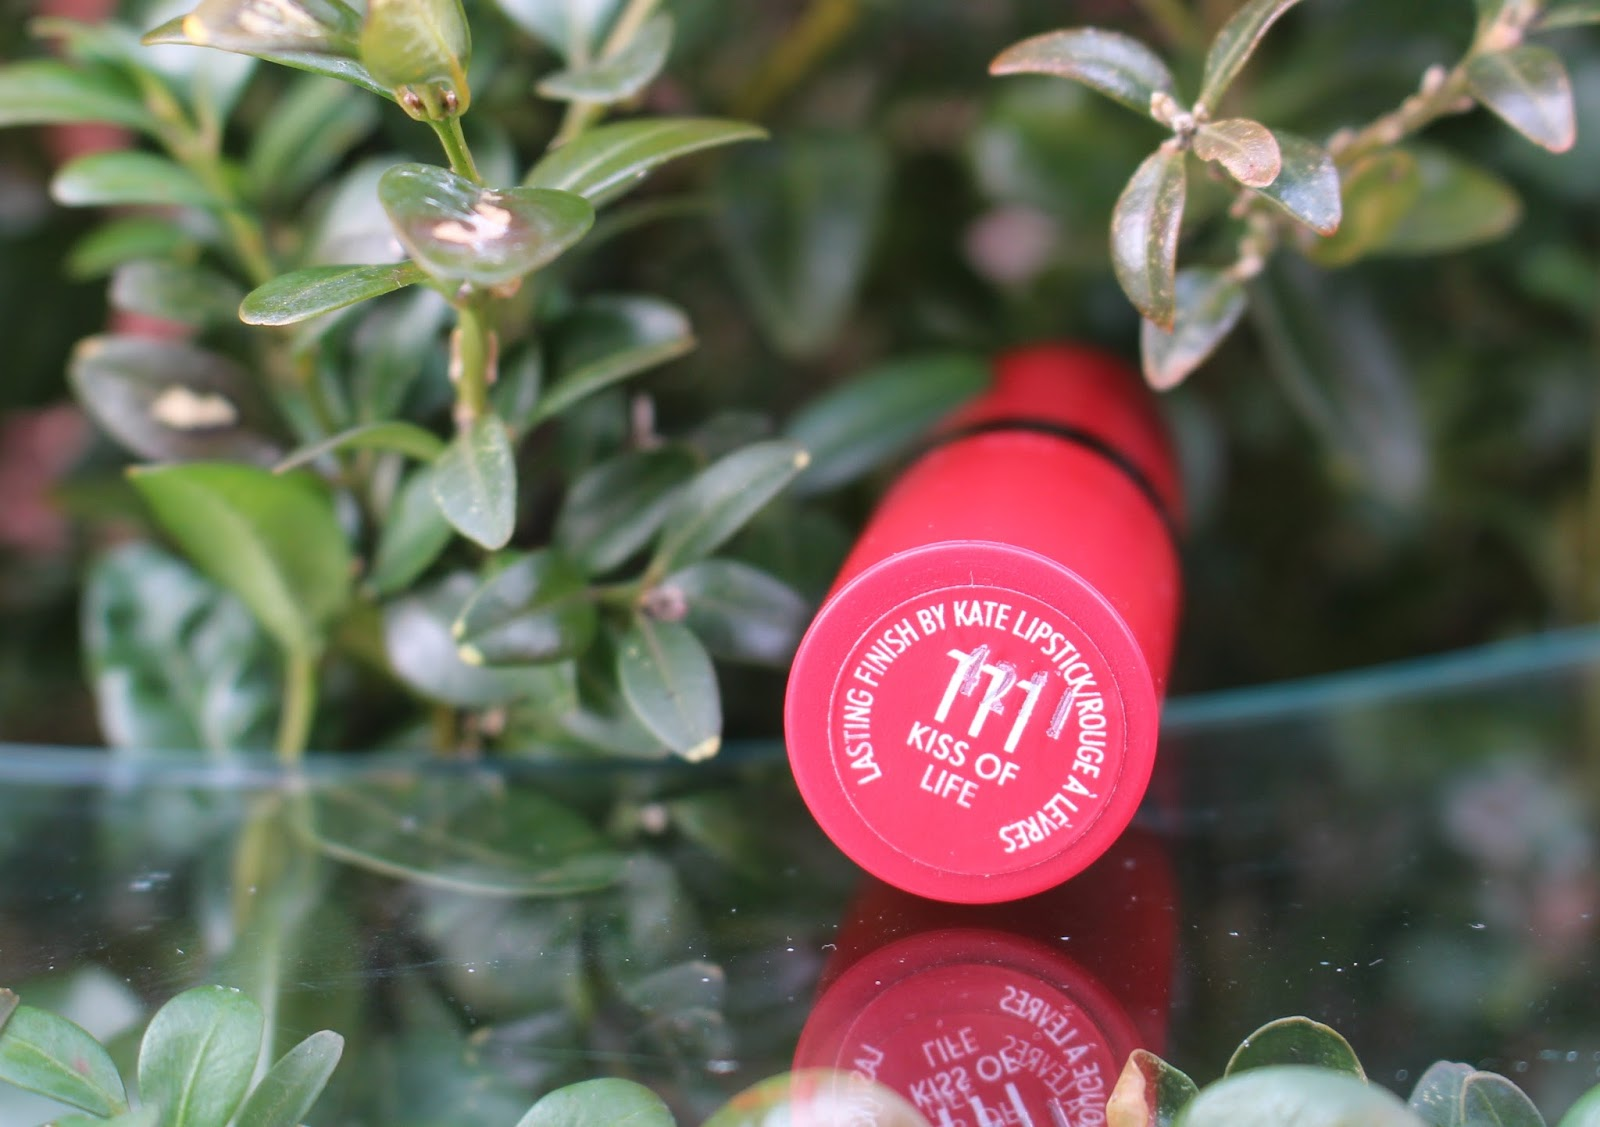 rimmel, rimmel kate moss, rimmel kate moss 111, rimmel kate moss kiss of life 111 lipstick, rimmel lipstick, through chelsea's eyes, review,